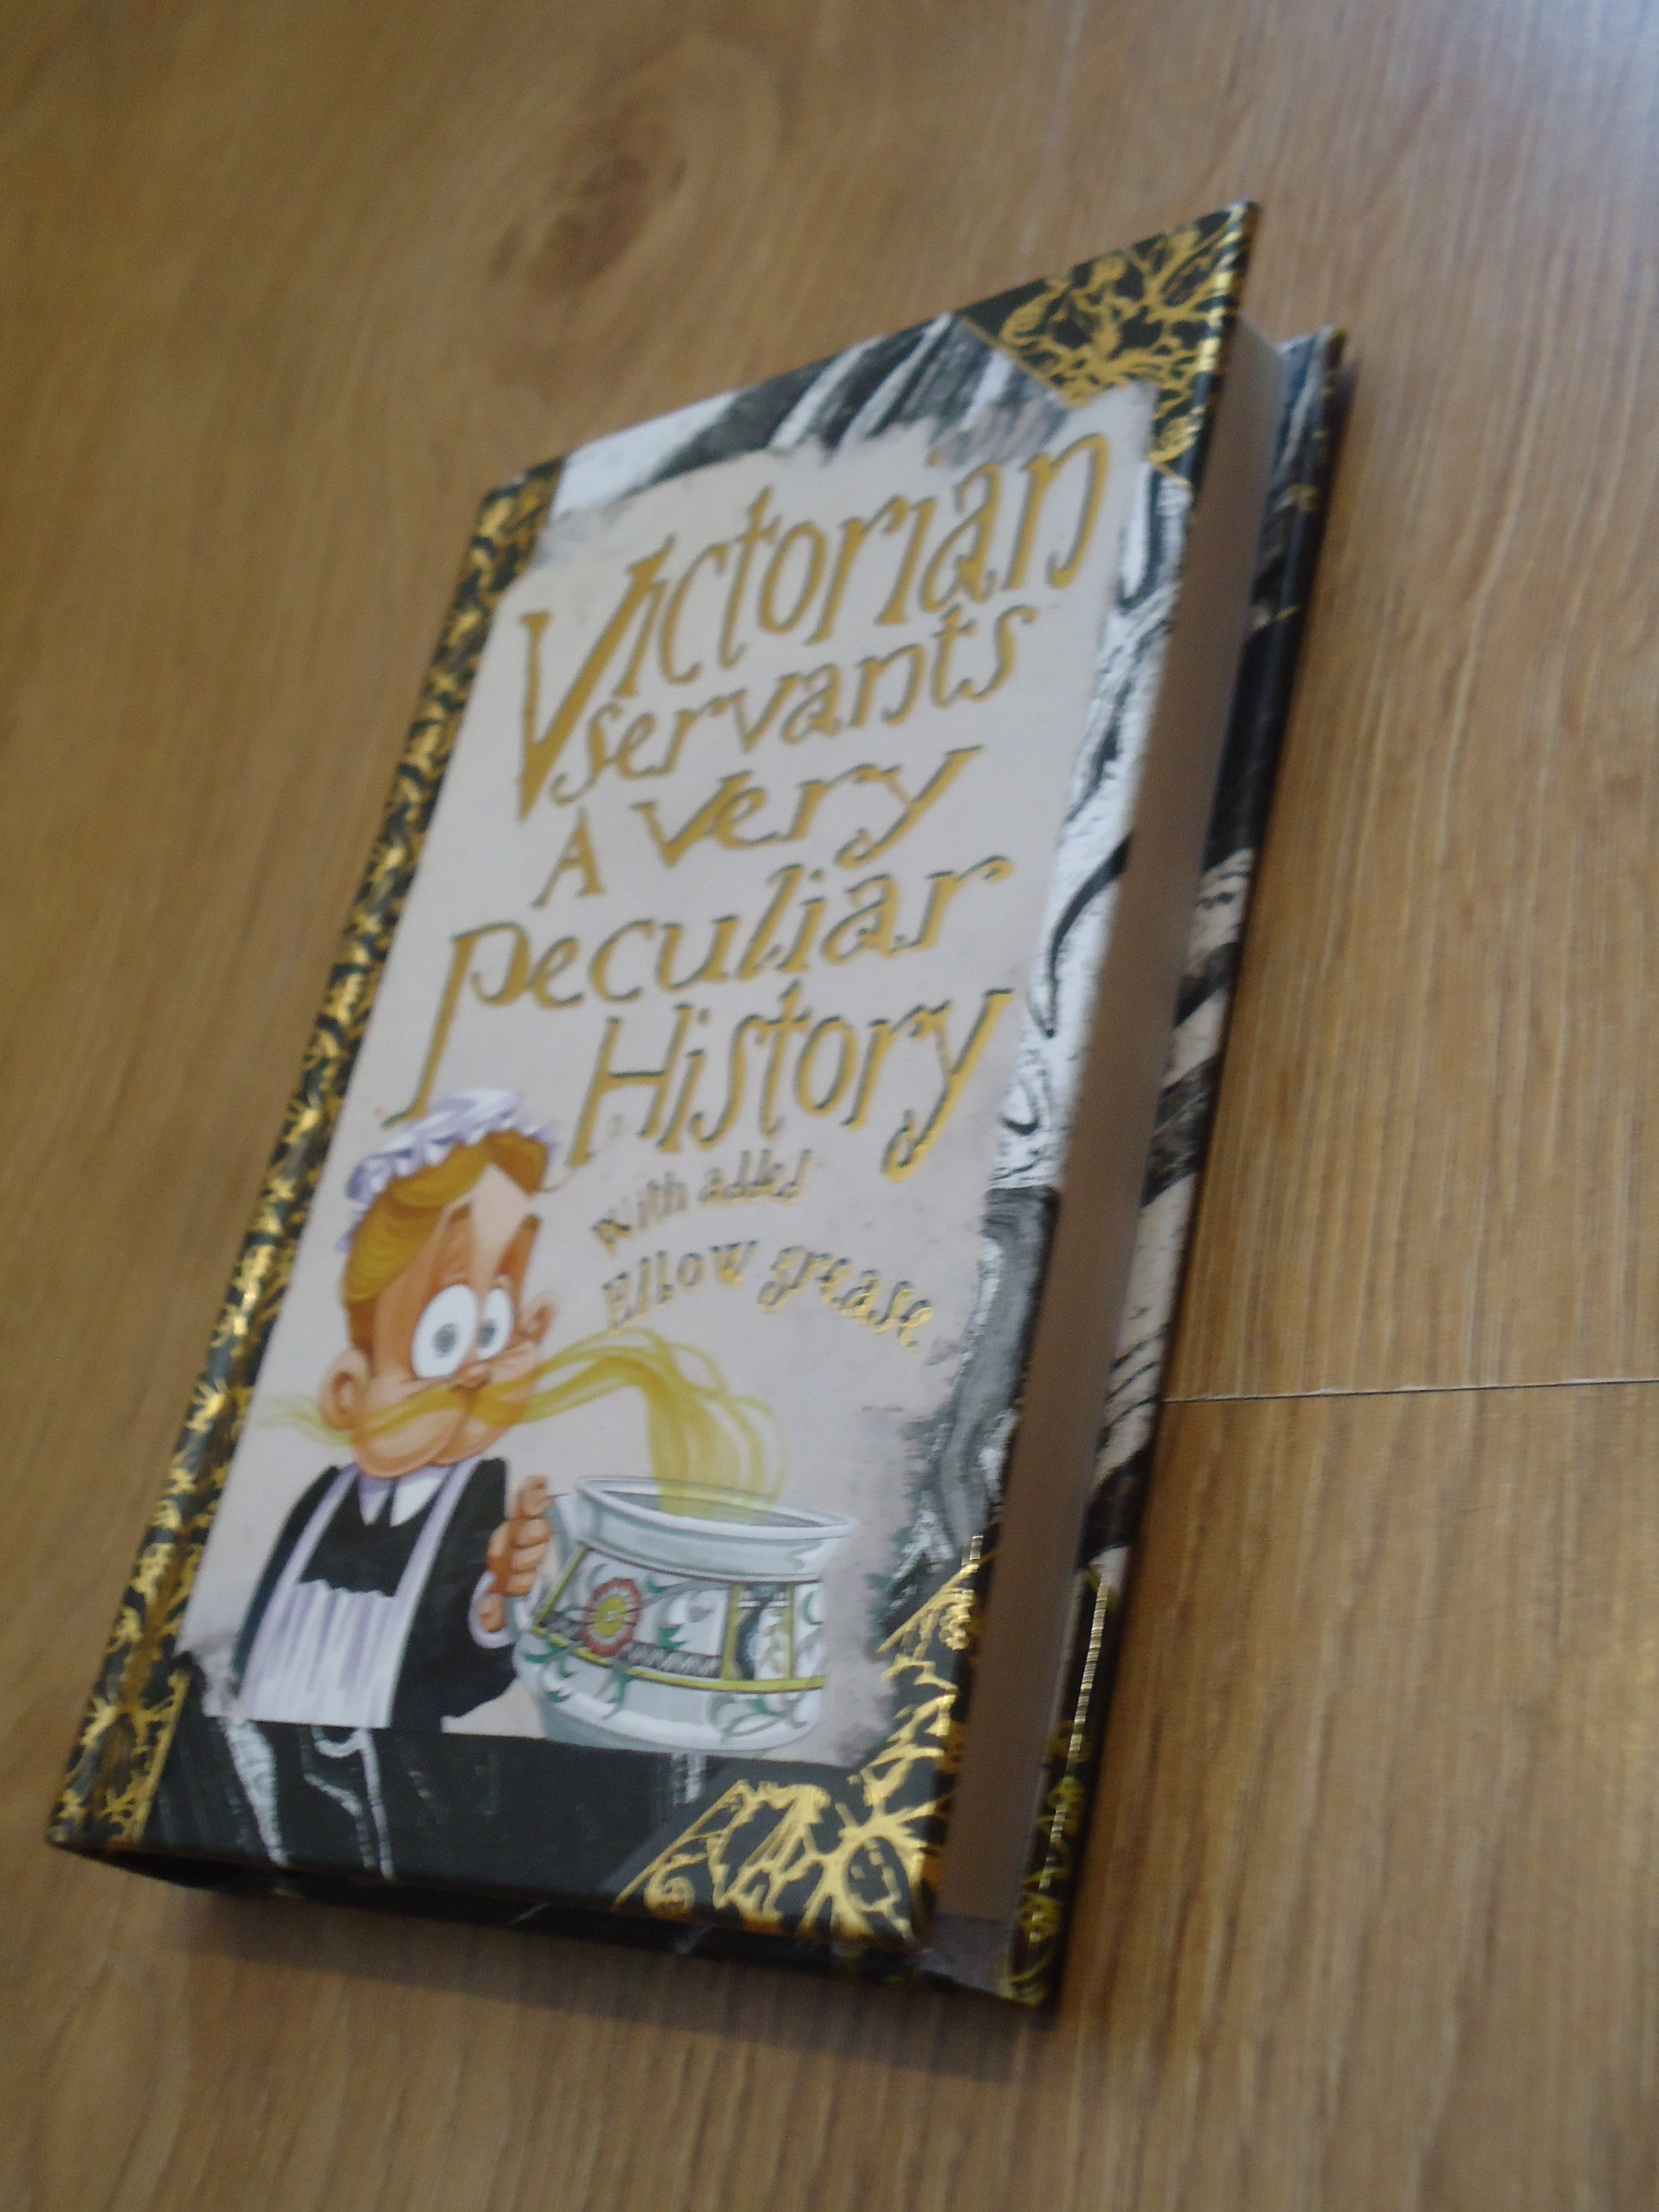 Victorian Servants, History, A very peculiar History, children's books, quirky books, pocket size books